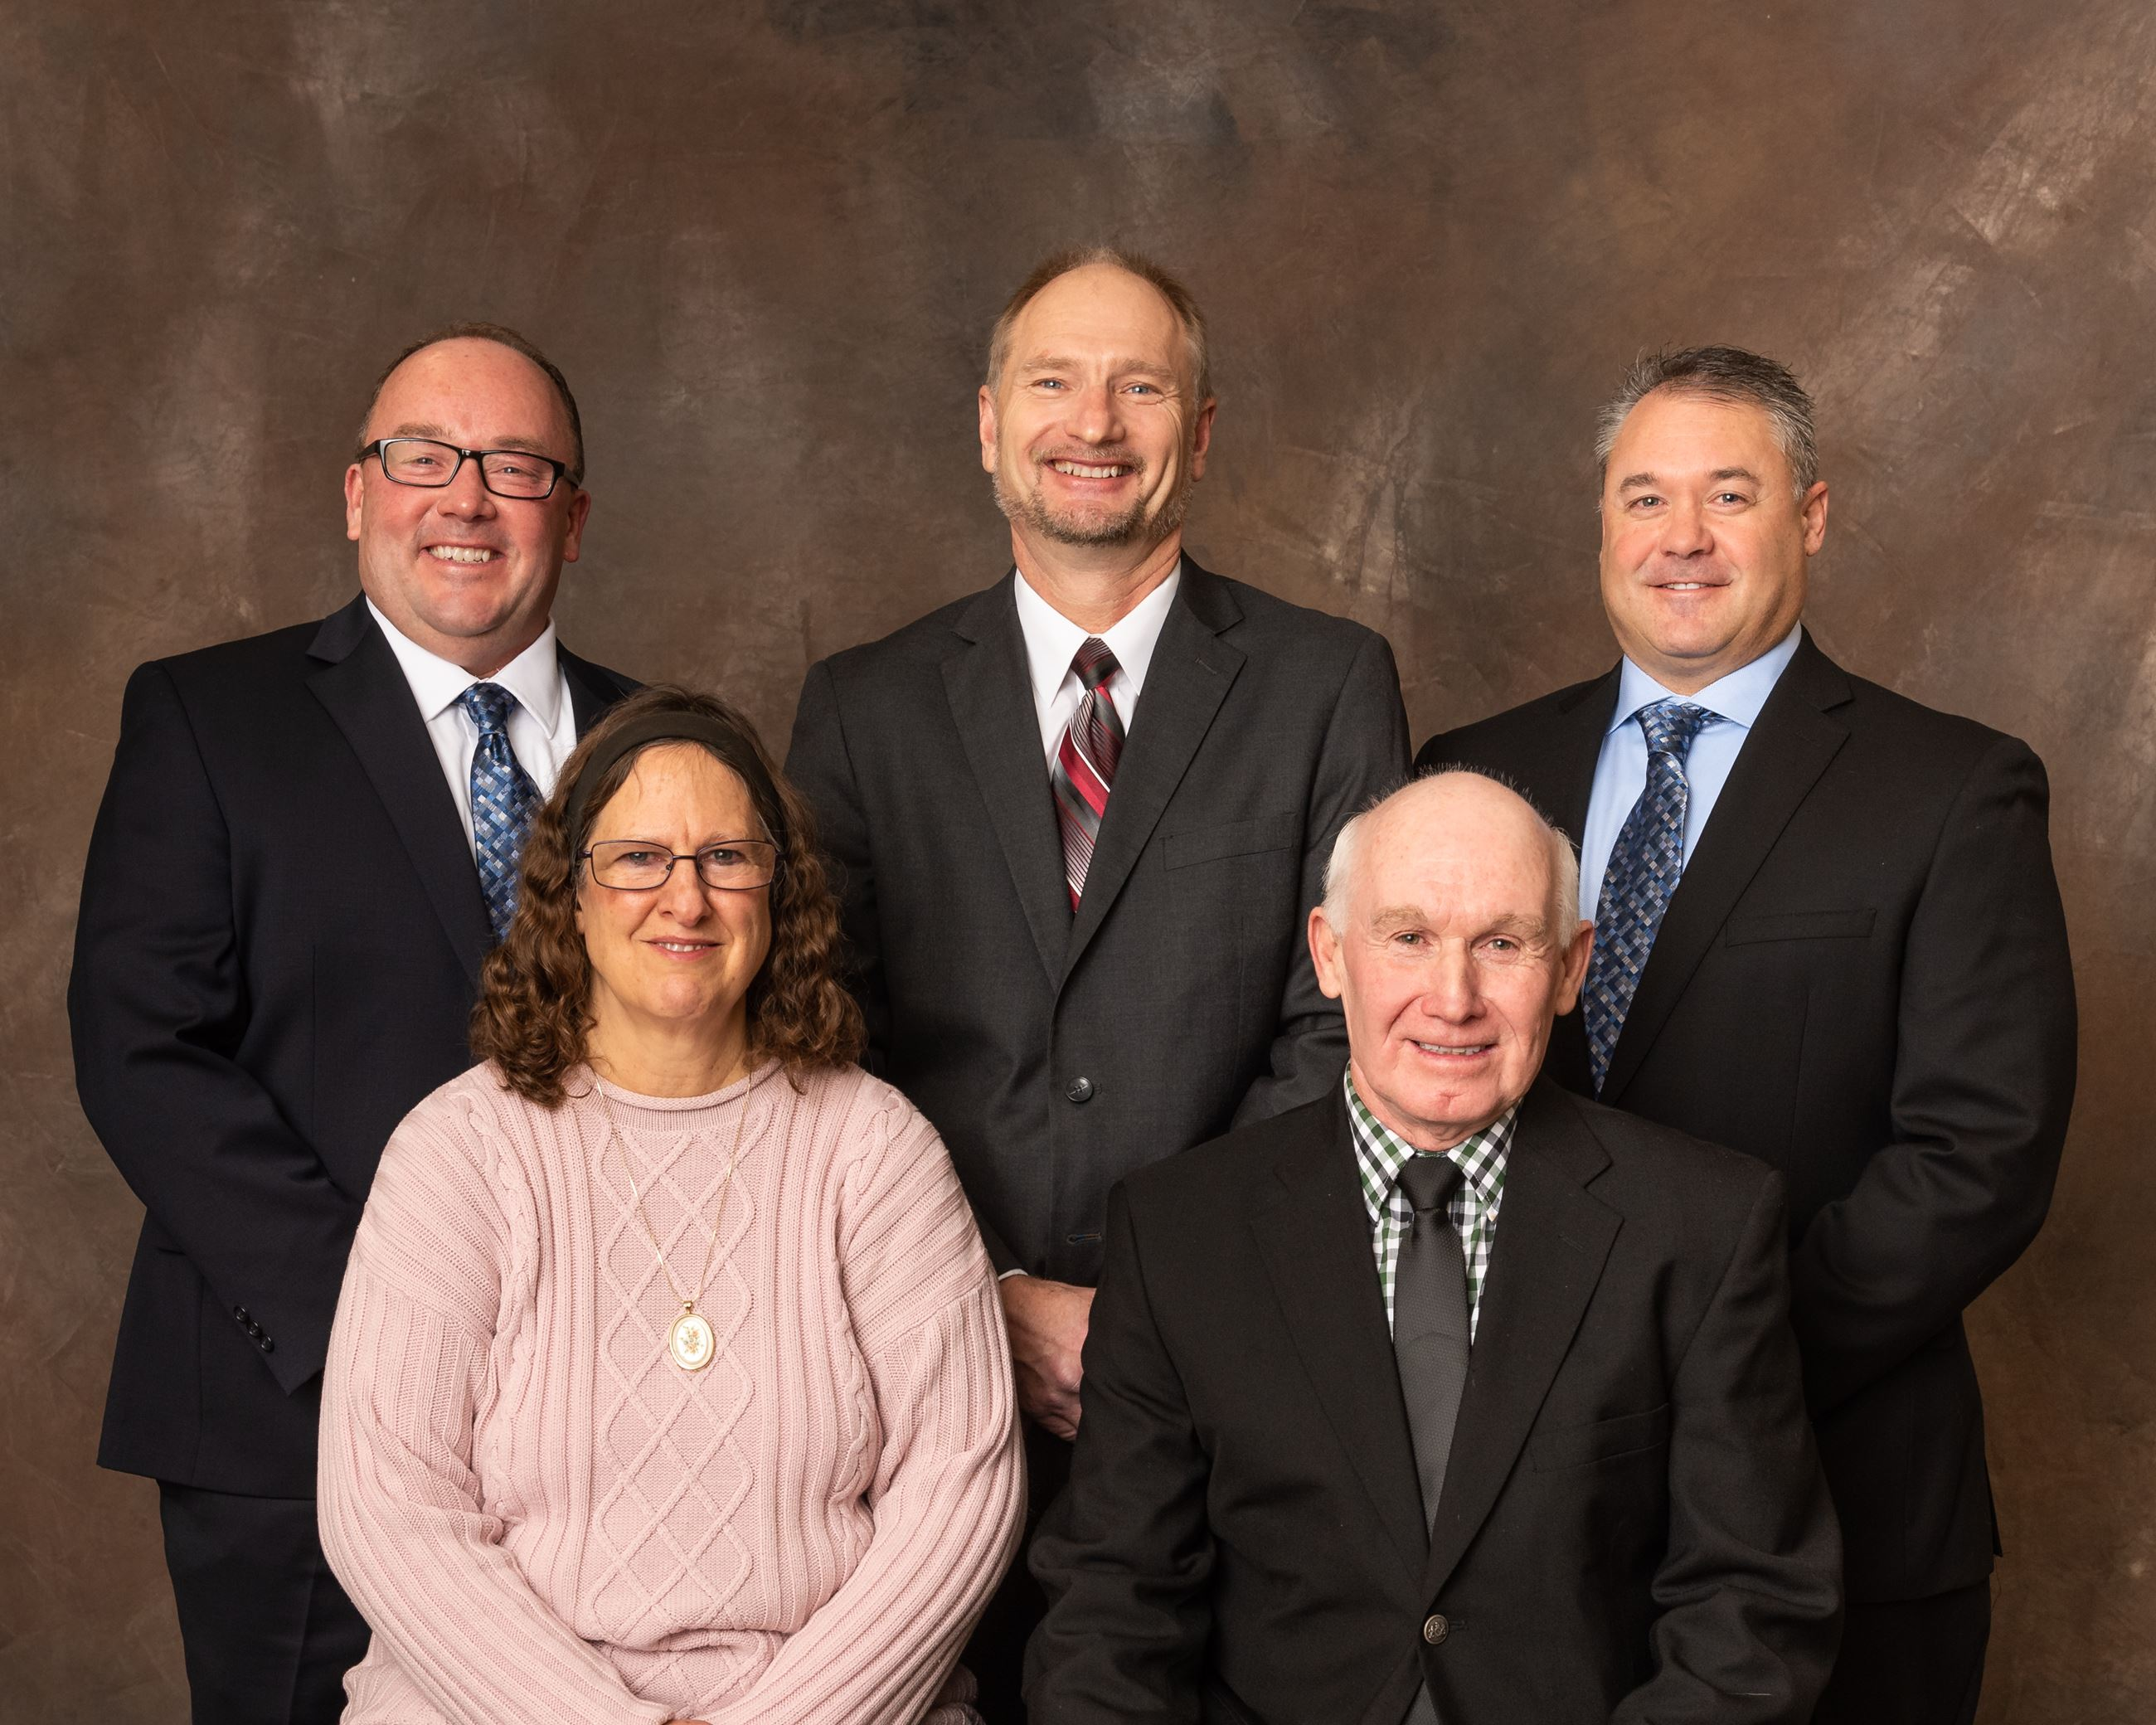 Benton County Commissioners Group Picture